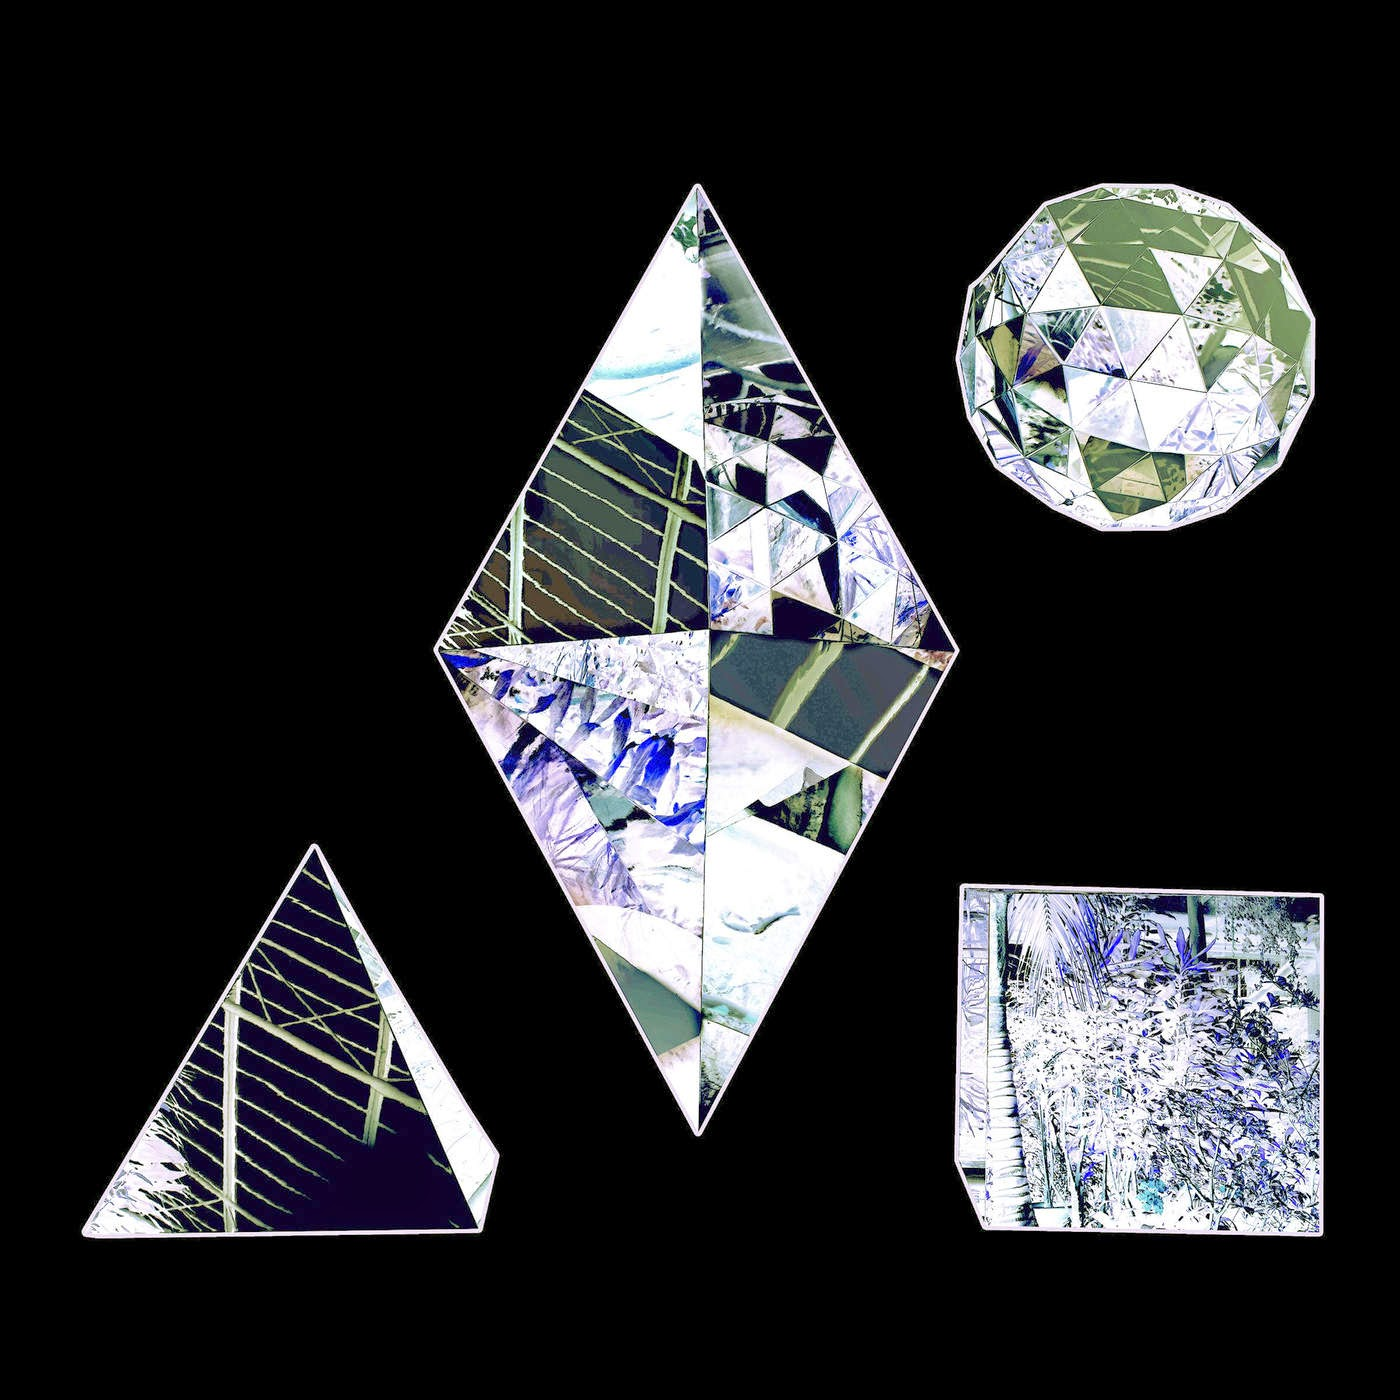 Clean Bandit & Jess Glynne - Real Love - Single Cover